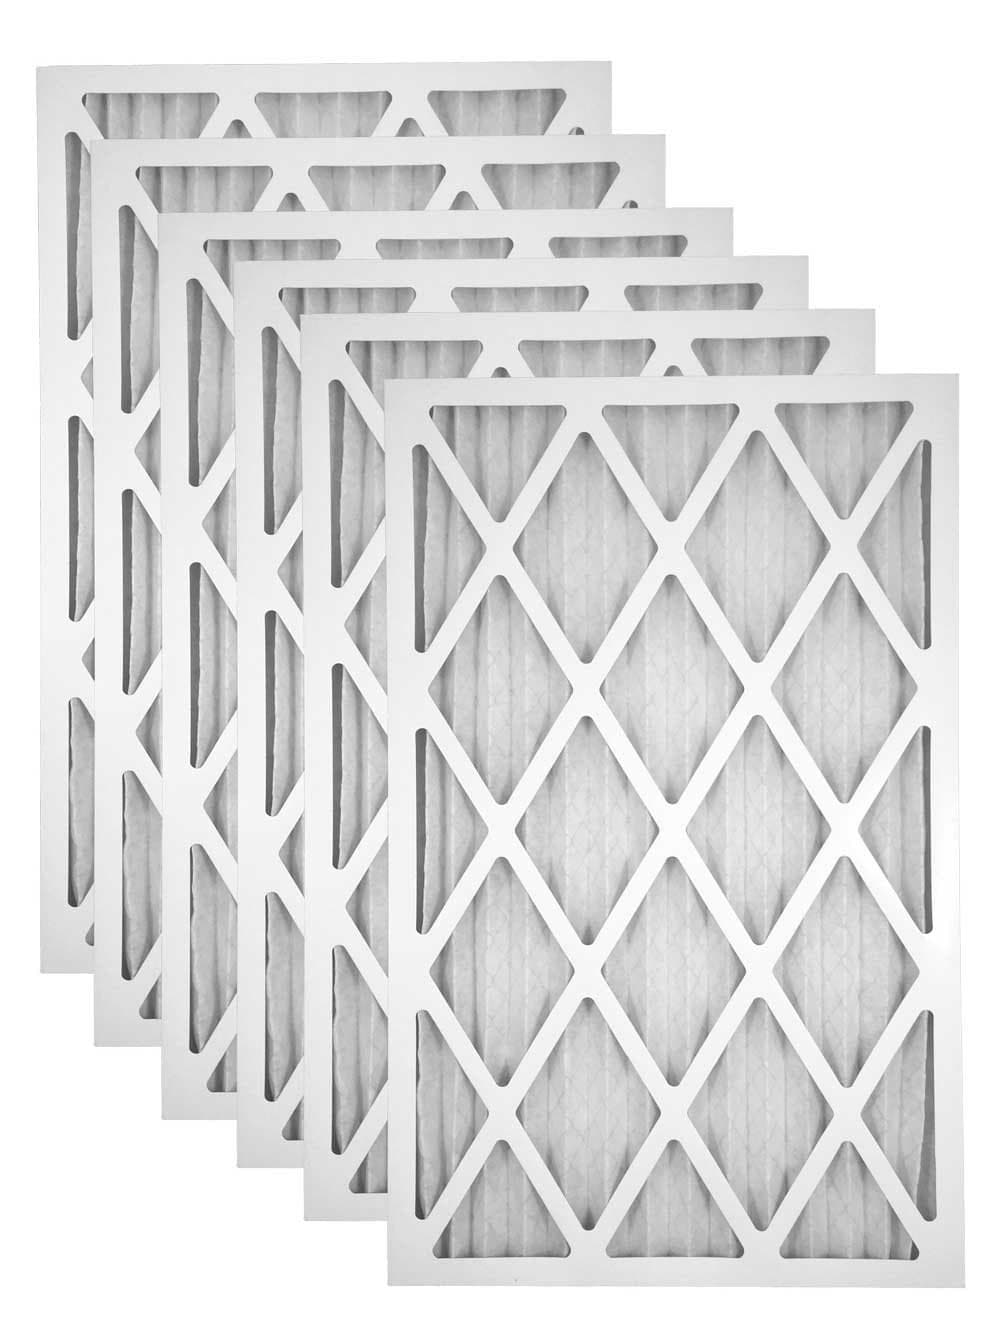 18x20x1 Merv 8 Pleated AC Furnace Filter - Case of 6 by Atomic Filters